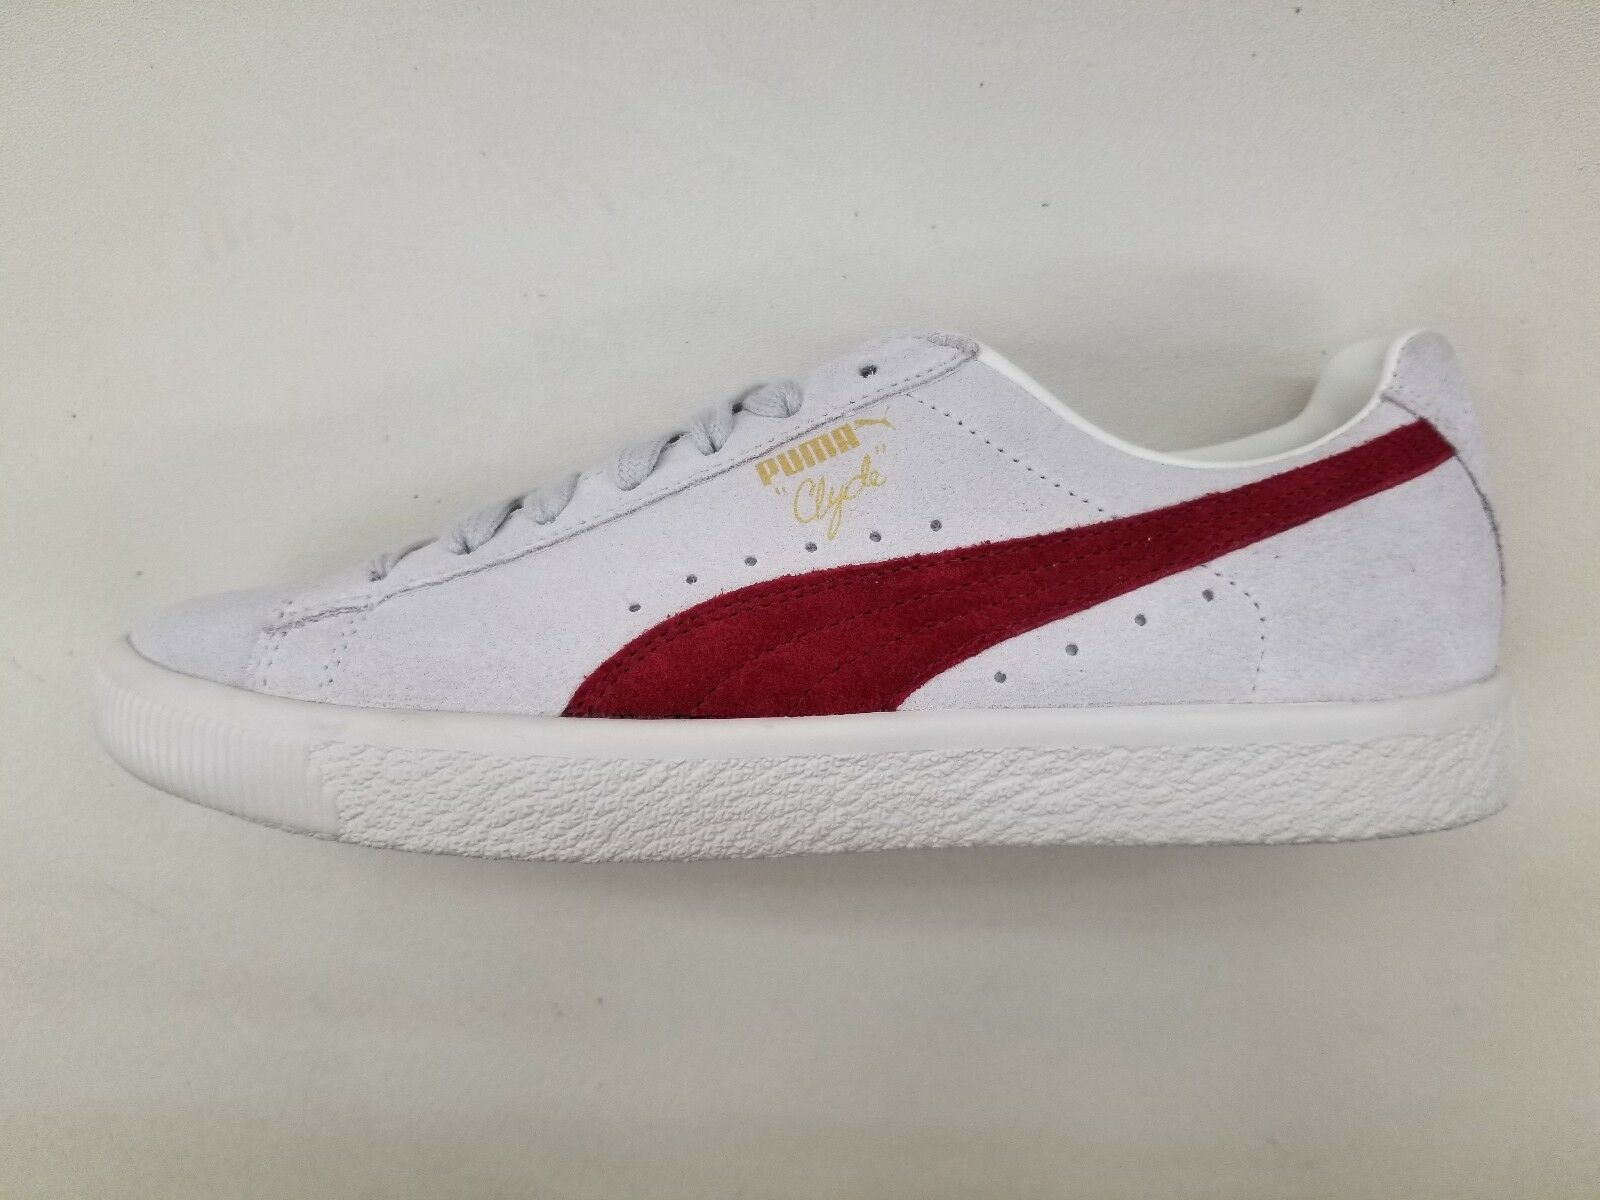 PUMA CLYDE FROM THE ARCH-IVE CREAM OFF Blanc CHERRY Homme Taille SNEAKERS 365319-01